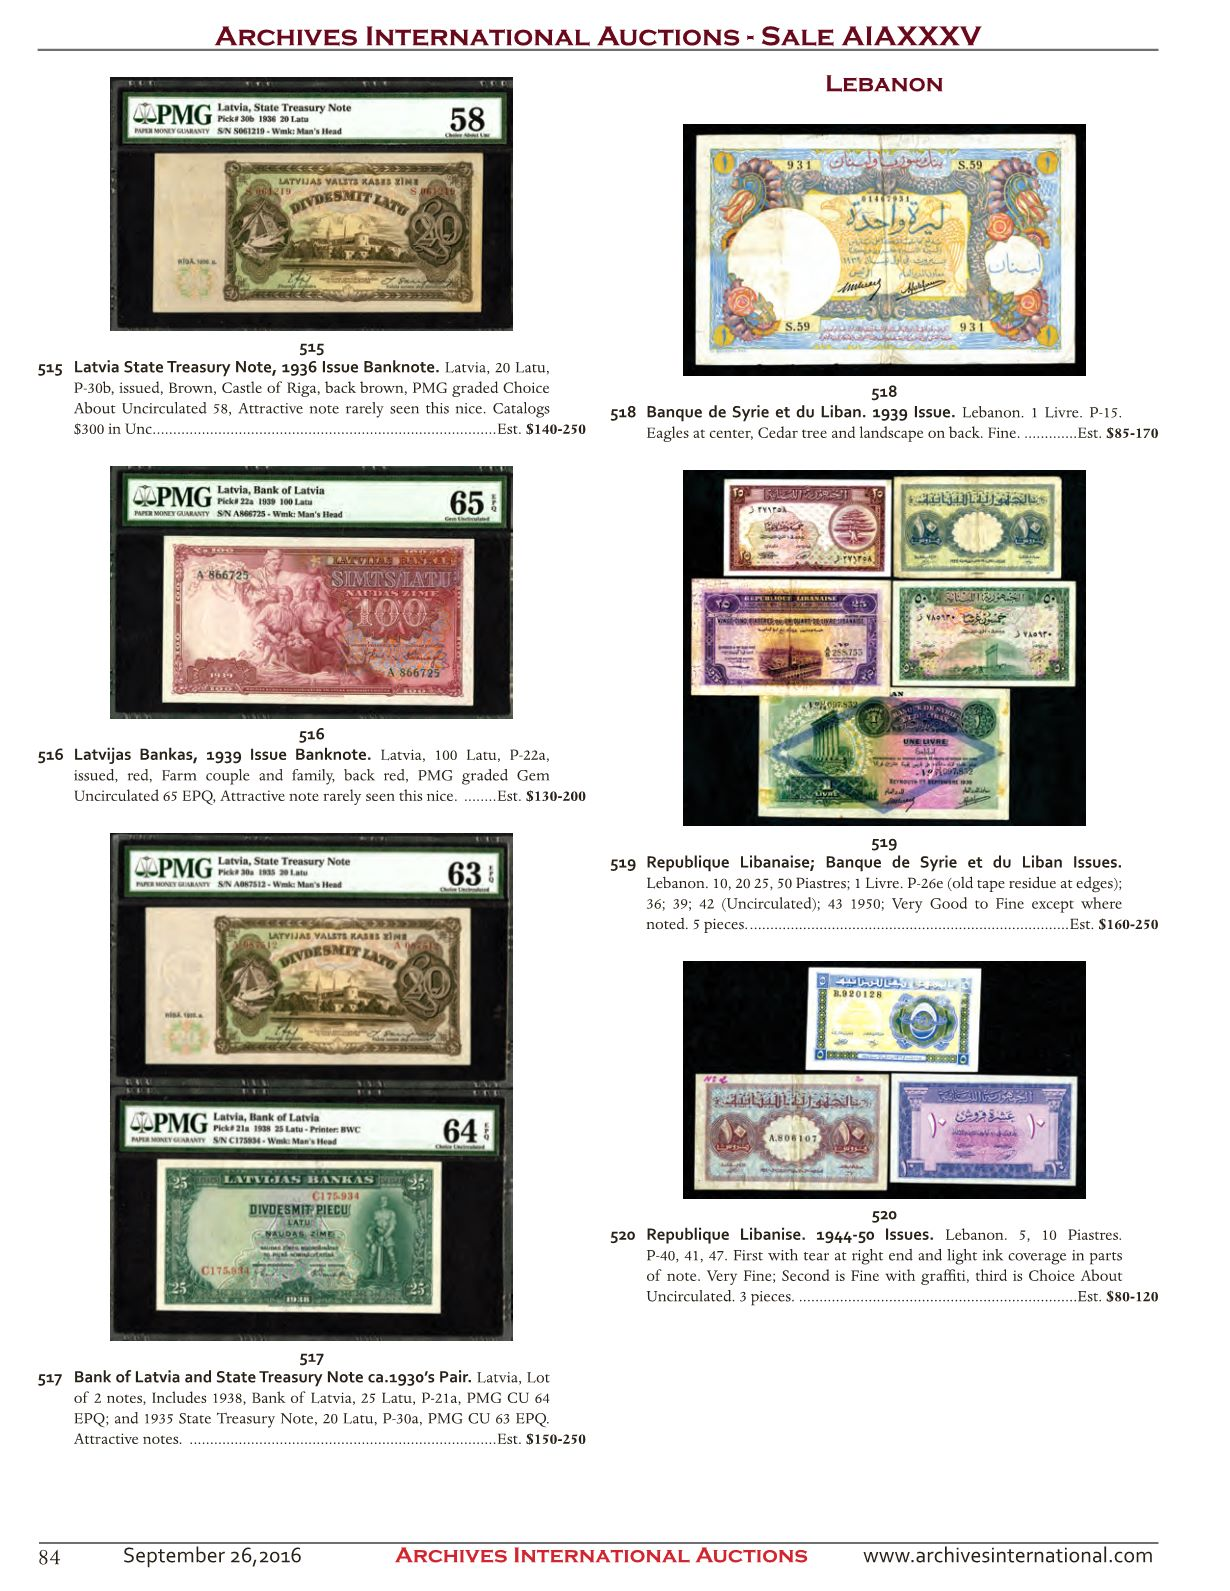 Africa Coins & Paper Money Egypt Silver Pound Unc,issued 1980 Goods Of Every Description Are Available